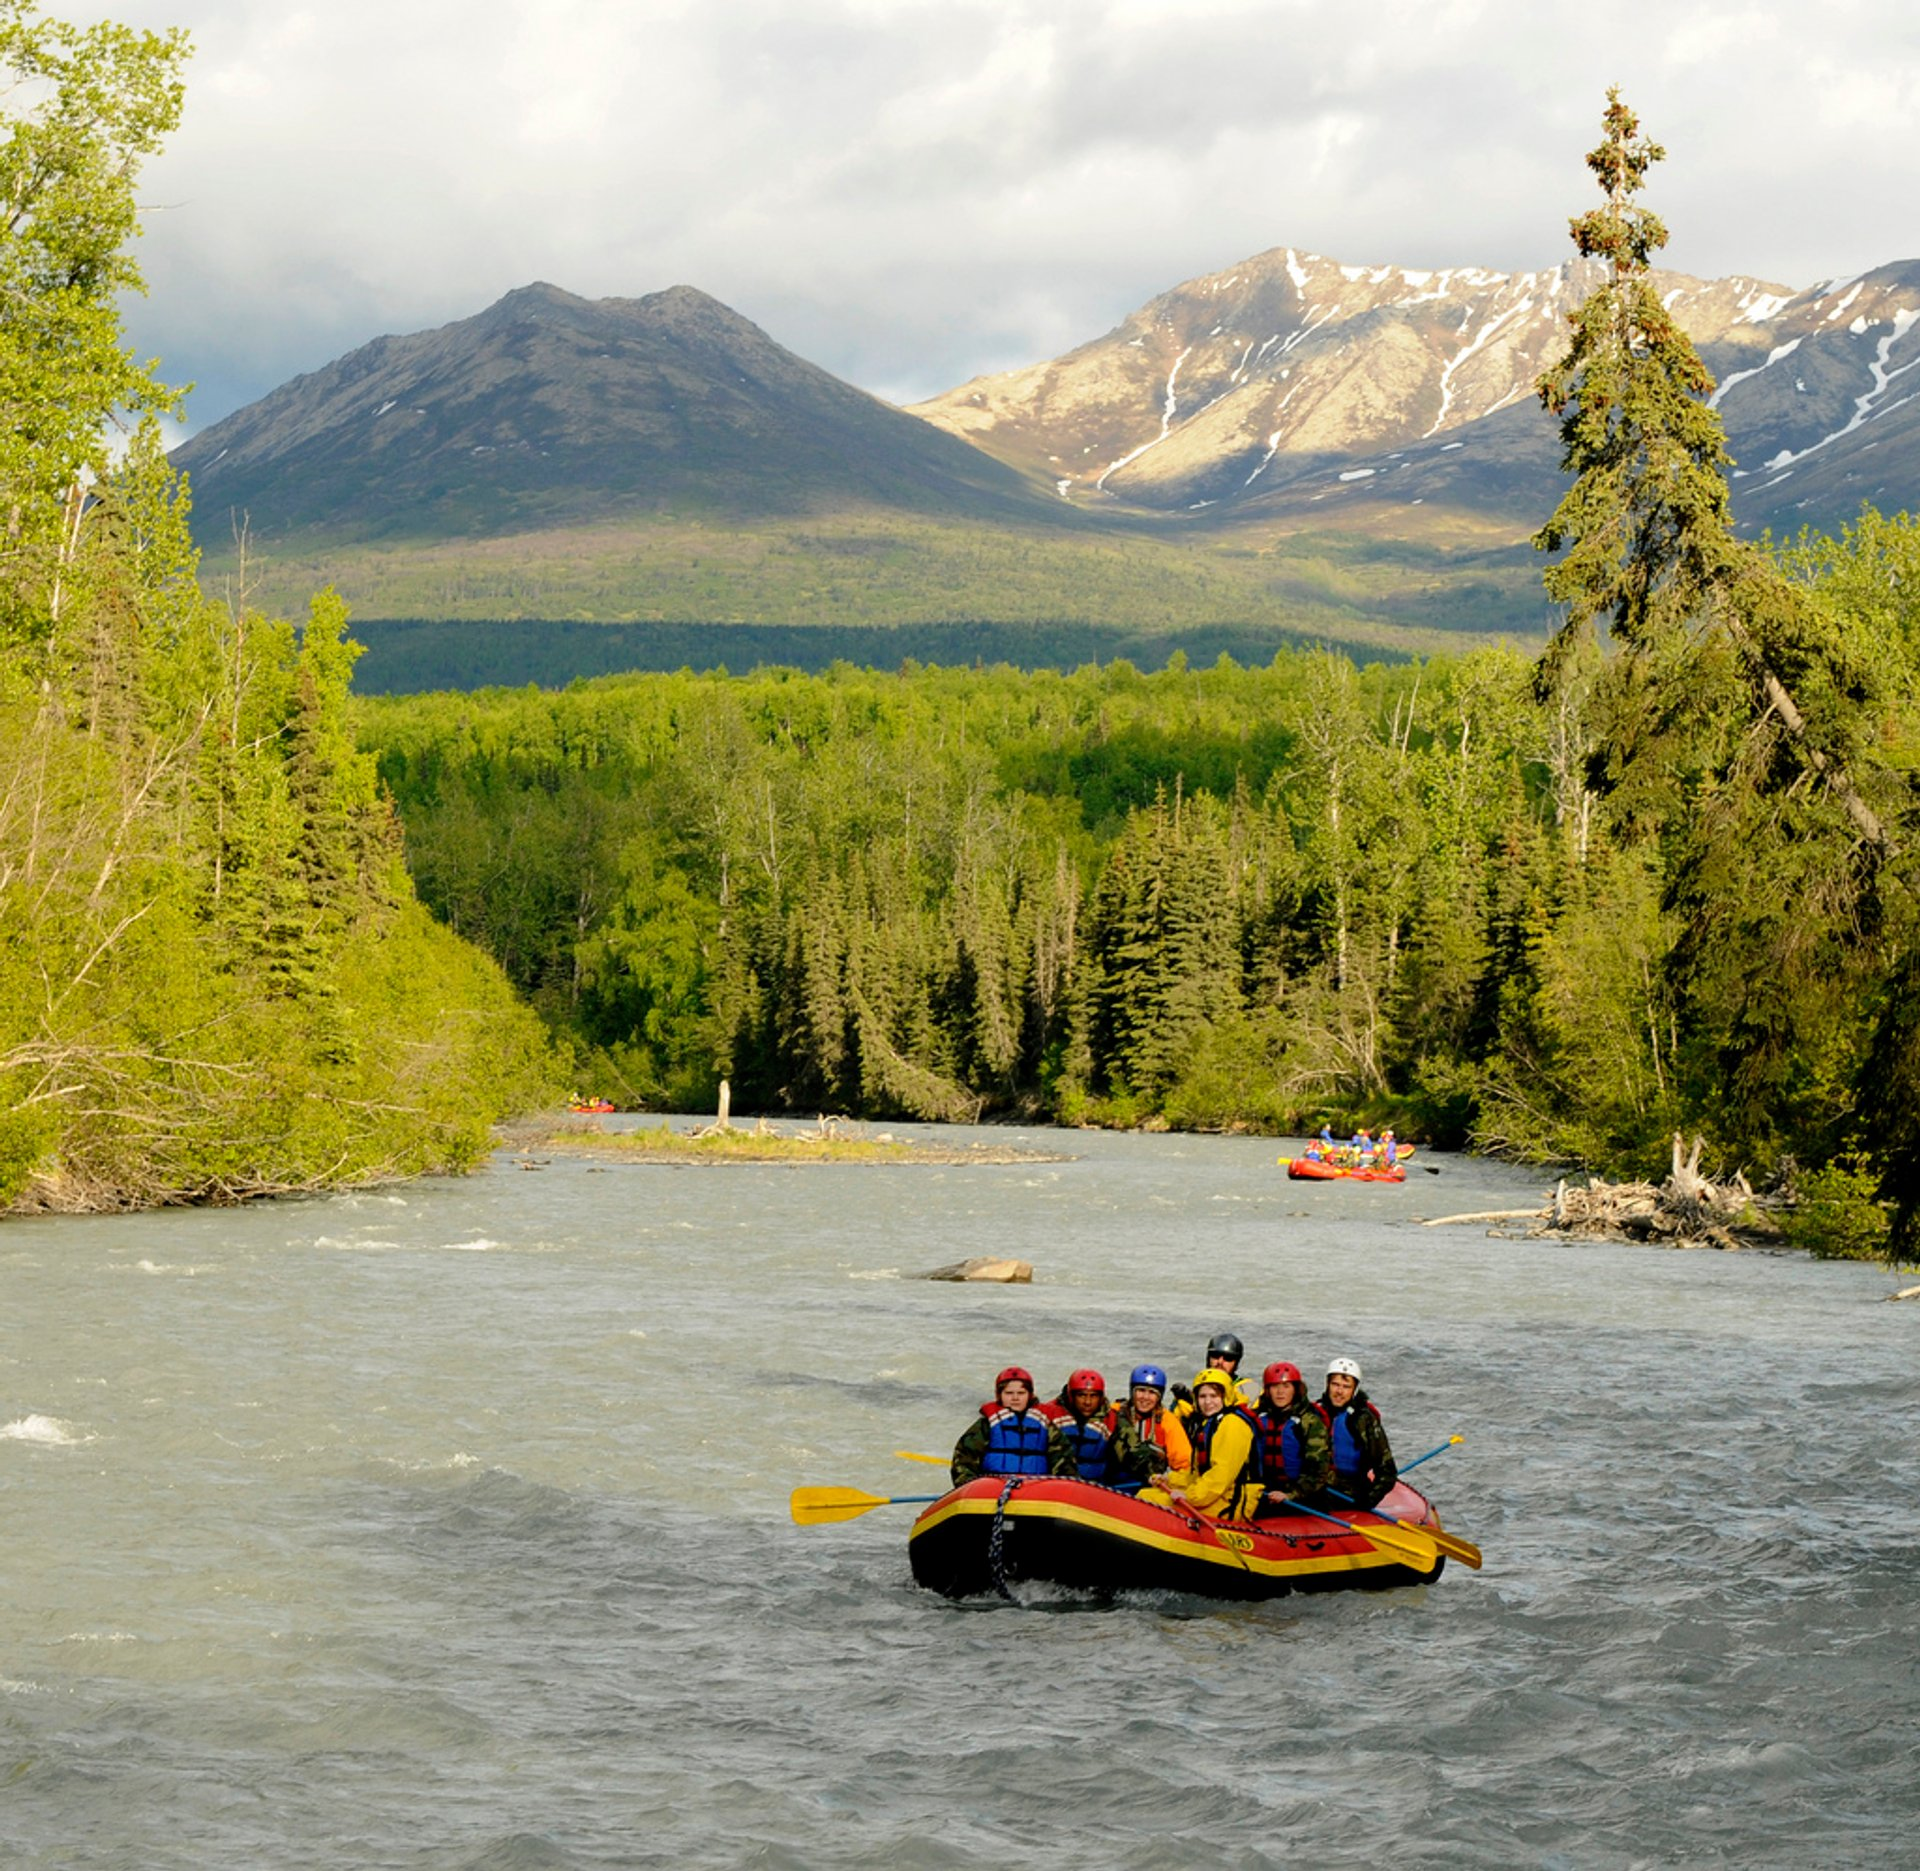 Three rafts pass through the natural beauty of Alaska during a white water rafting trip on Eagle River at Joint Base Elmendorf-Richardson 2019